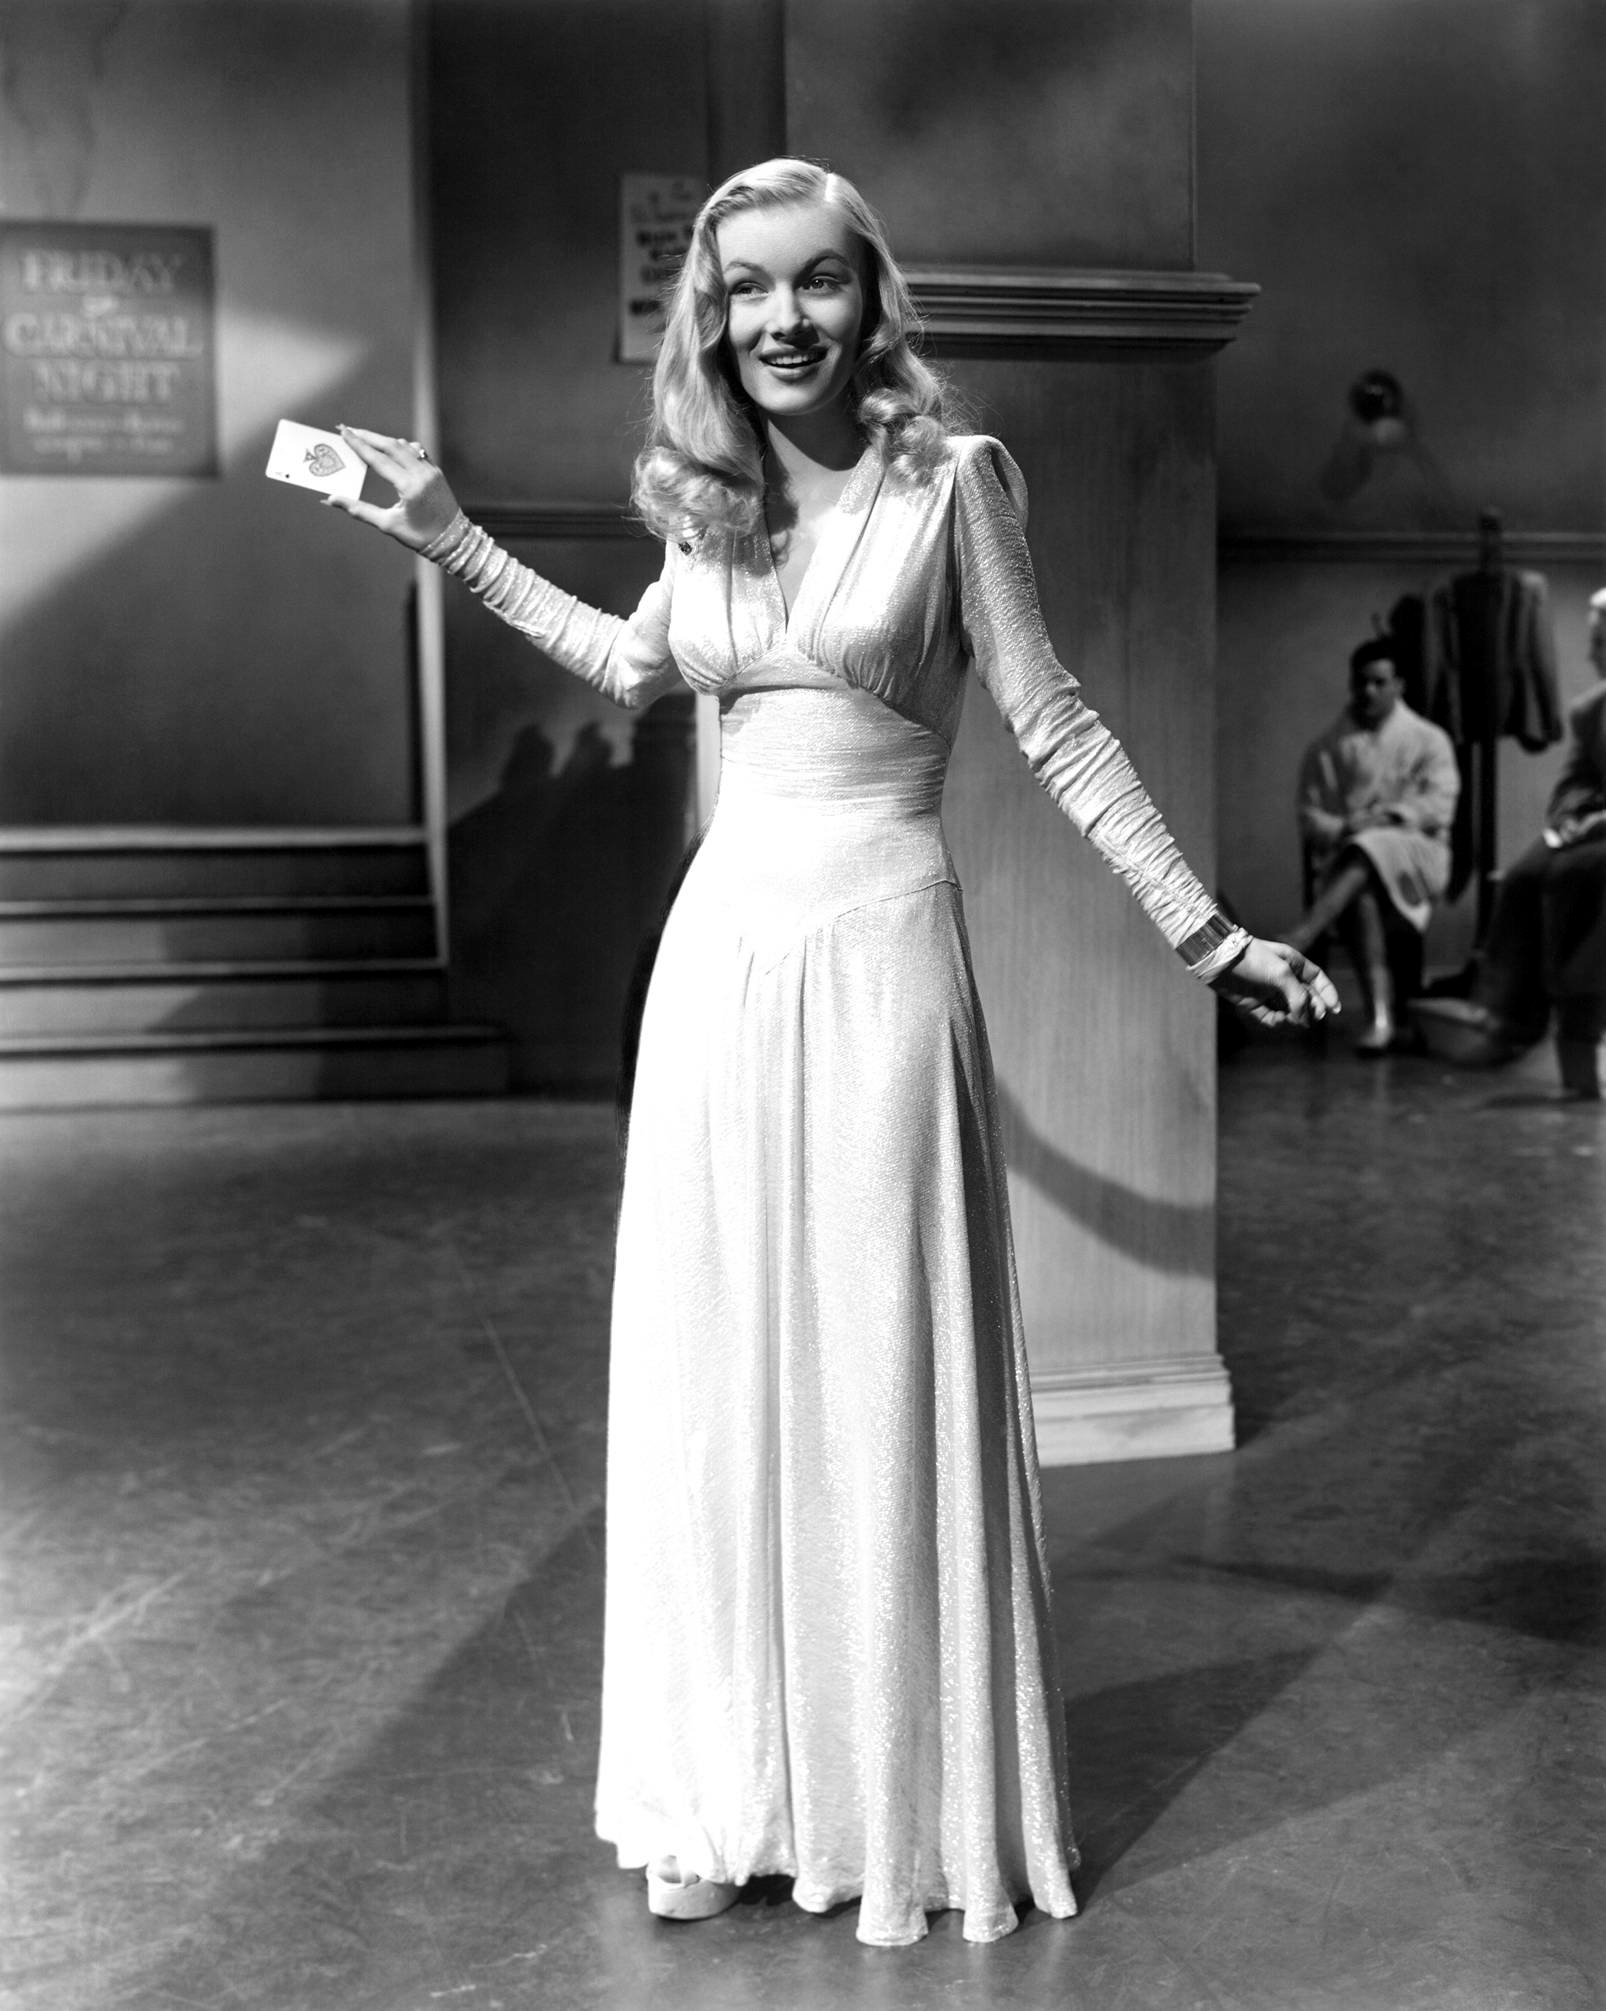 Veronica Lake photo 5 of 73 pics, wallpaper - photo #183041 ...